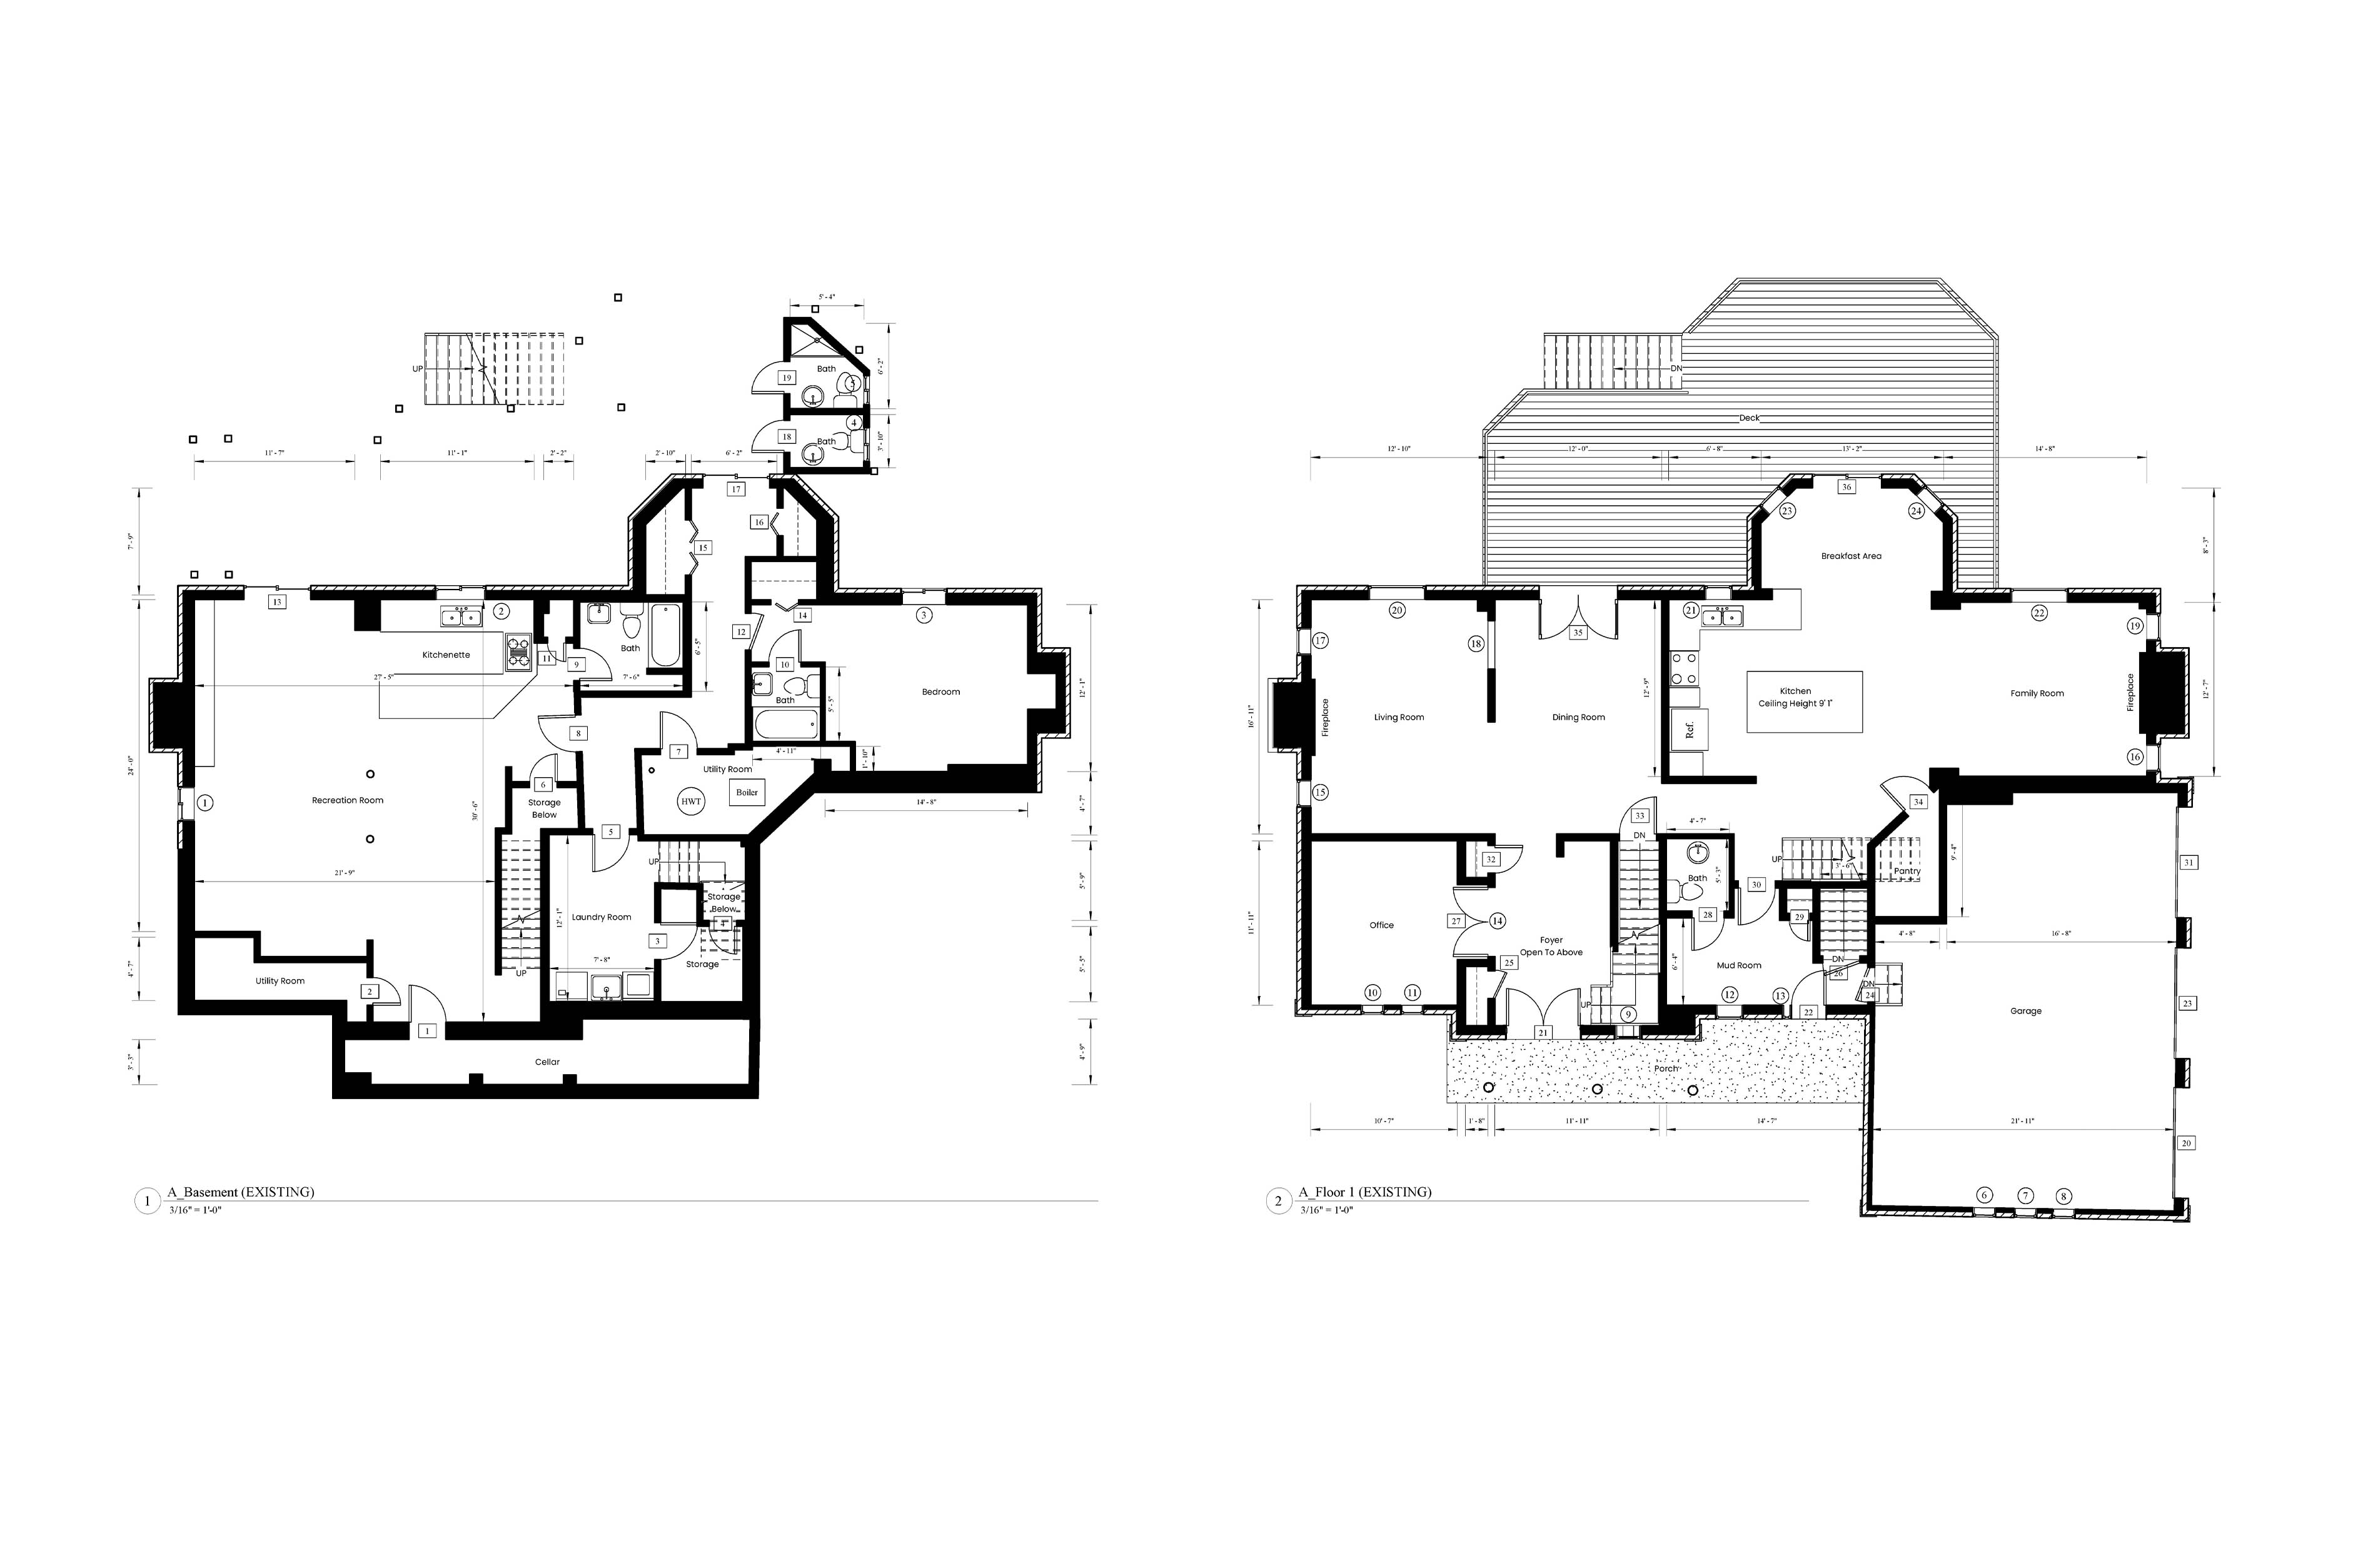 AutoCad drawings of the existing floor plans and data of the house.